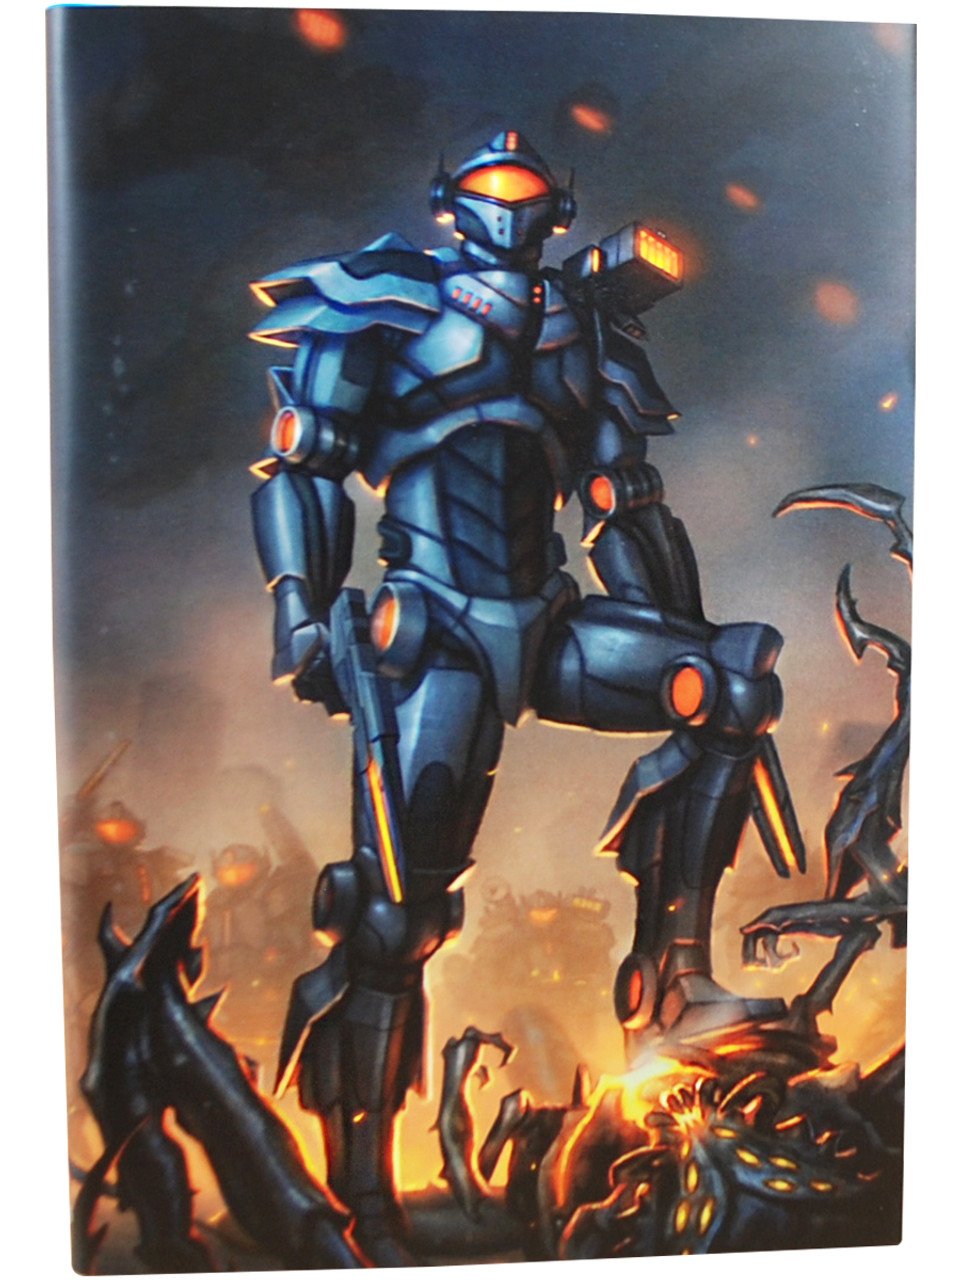 """Robert A. Heinlein """"Starship Troopers"""" Signed Limited Artist Edition of 750, Slipcased [Sealed]"""